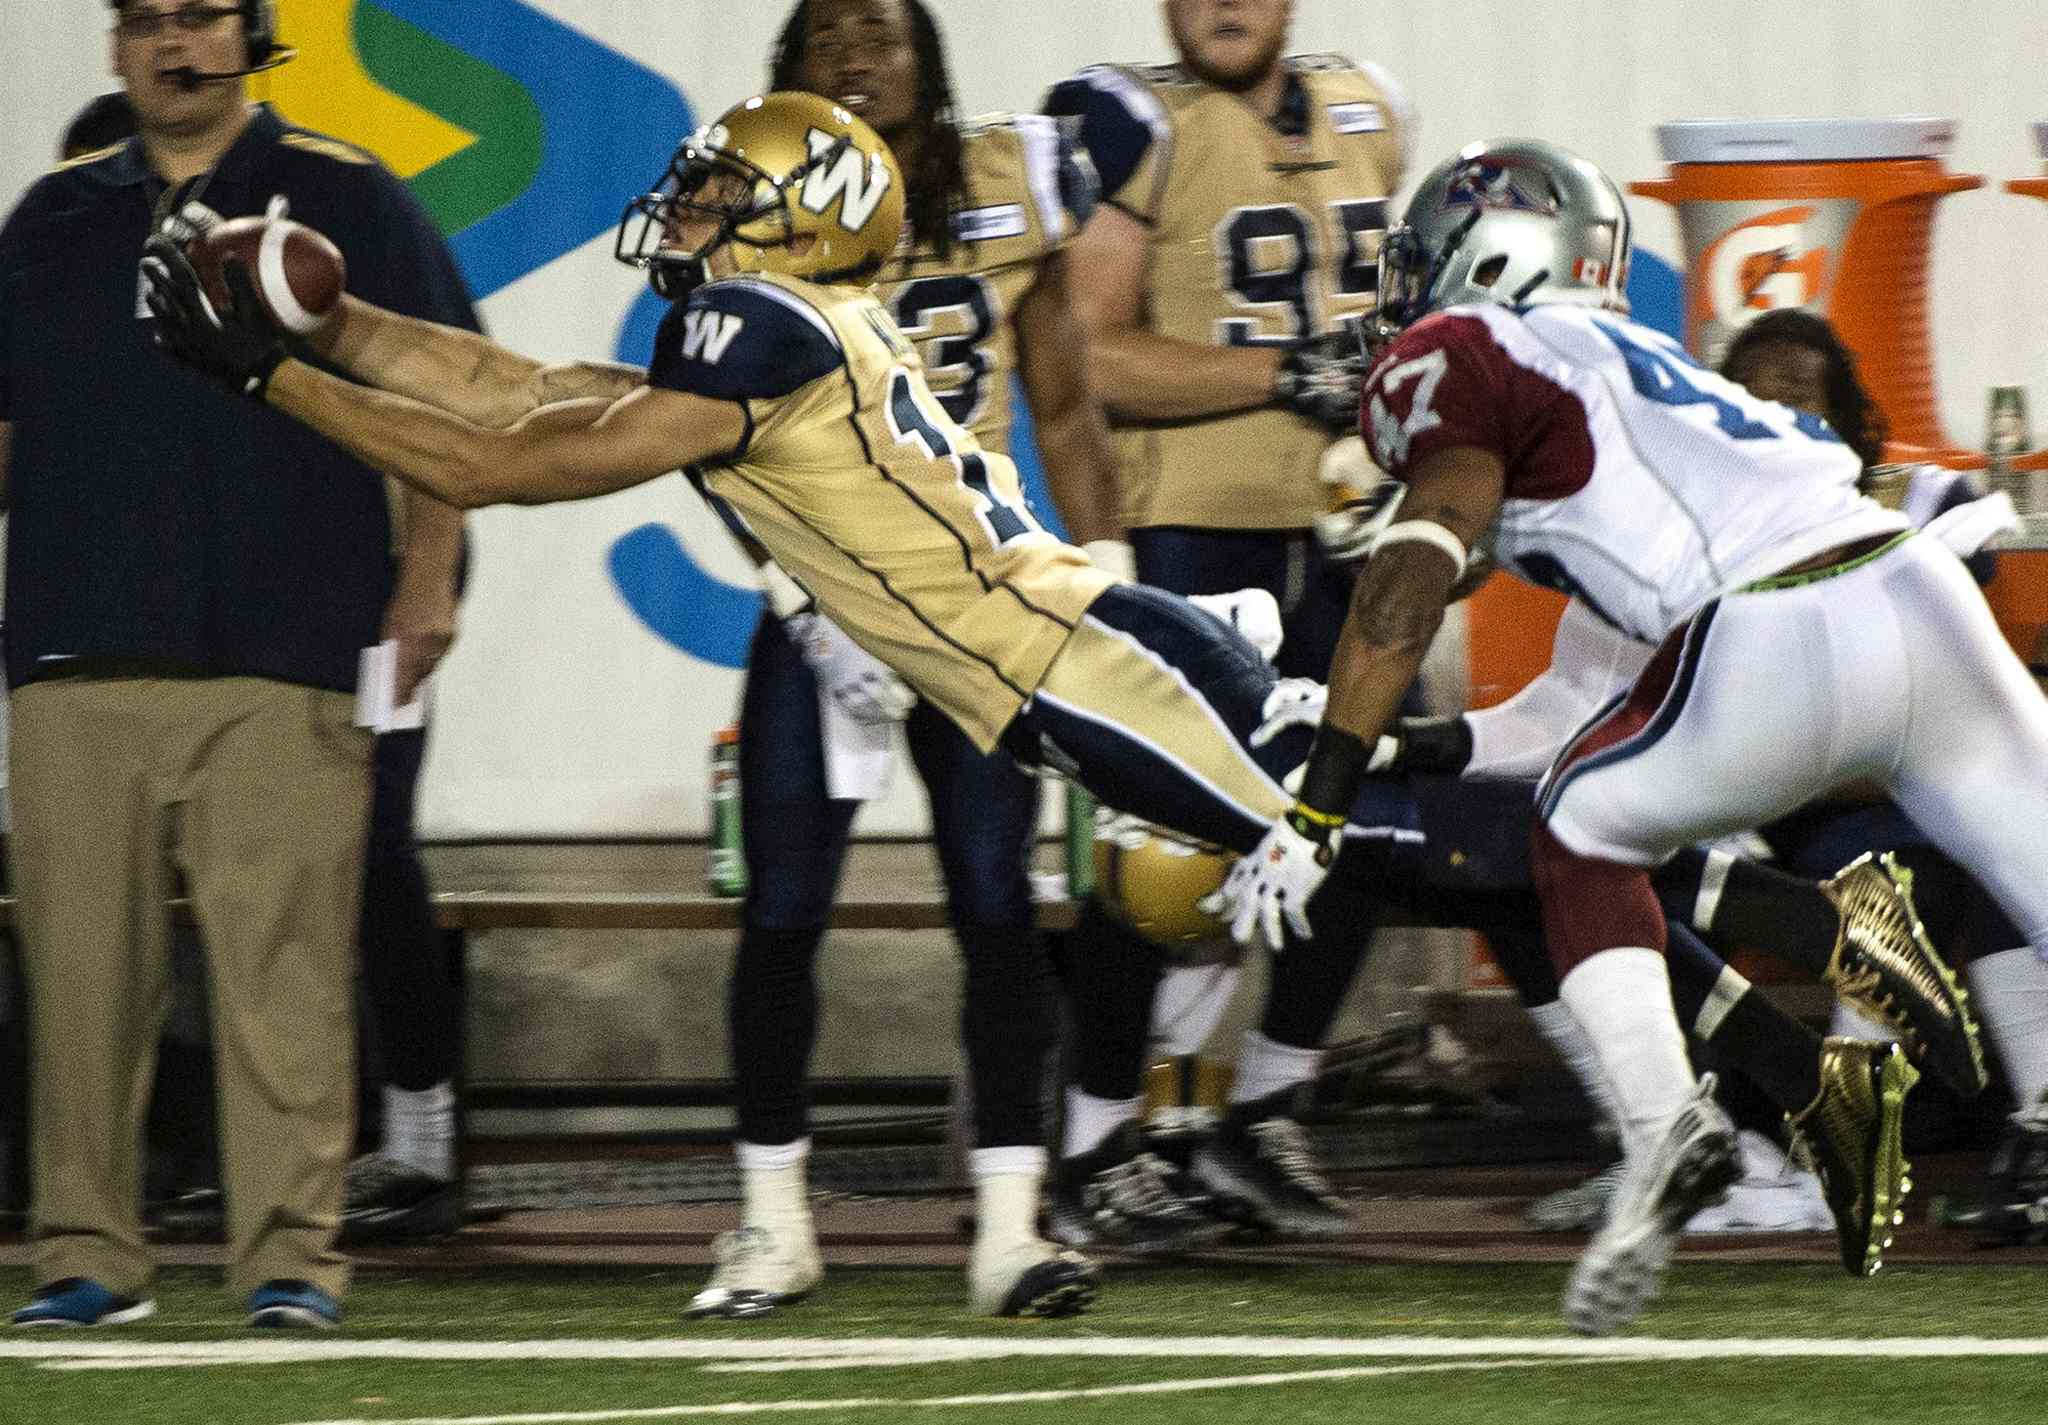 Winnipeg Blue Bombers' slotback Nick Moore catches a pass in front of Montreal Alouettes' defensive back Jamaan Webb during the third quarter of Friday's game.